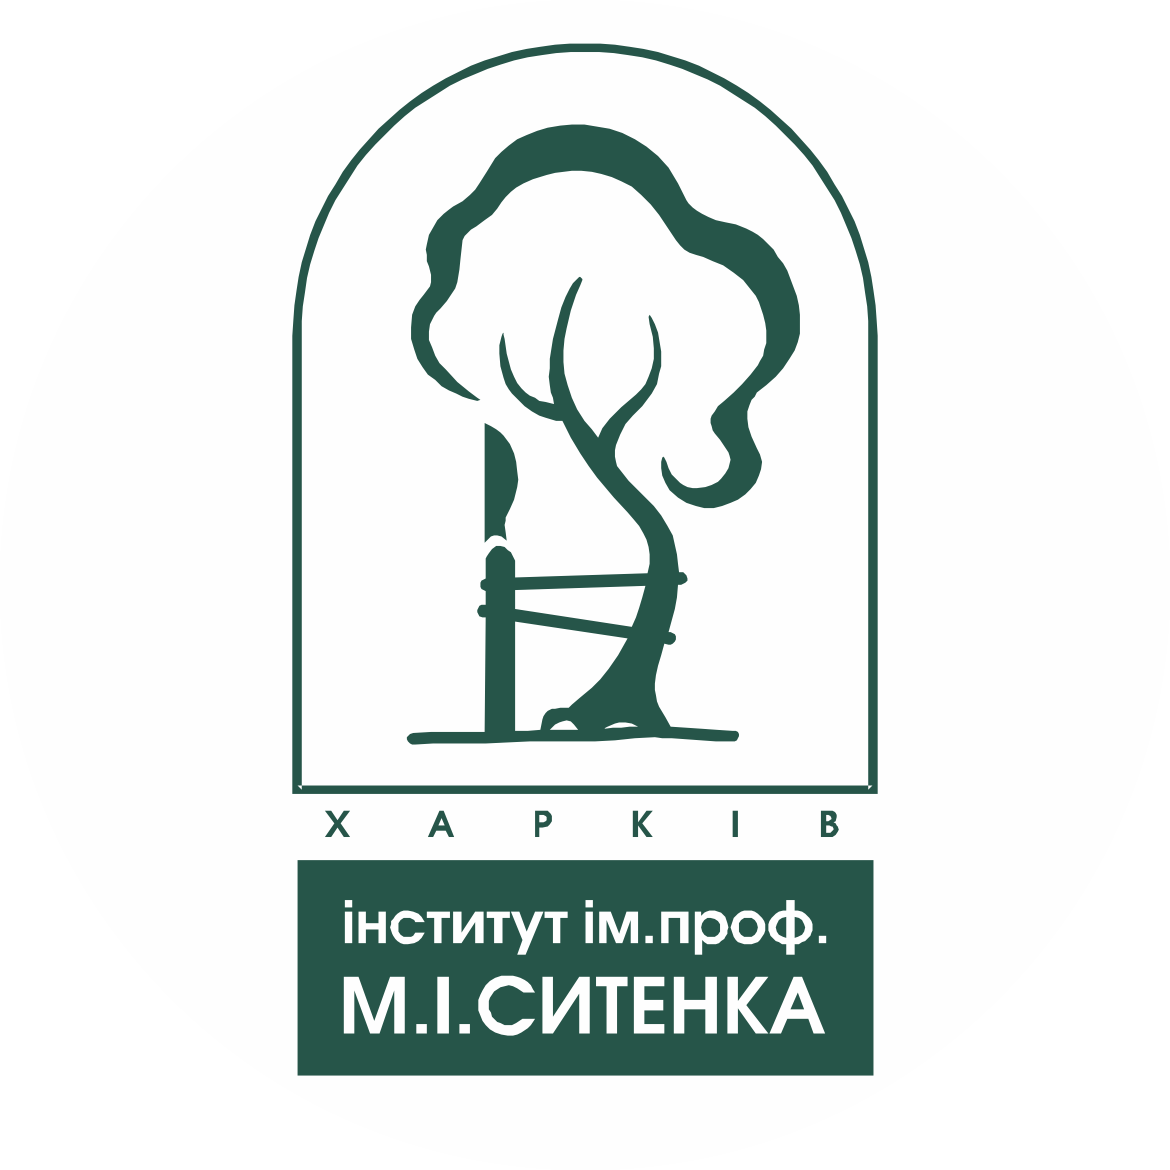 Sytenko Institute of Spine and Joint Pathology